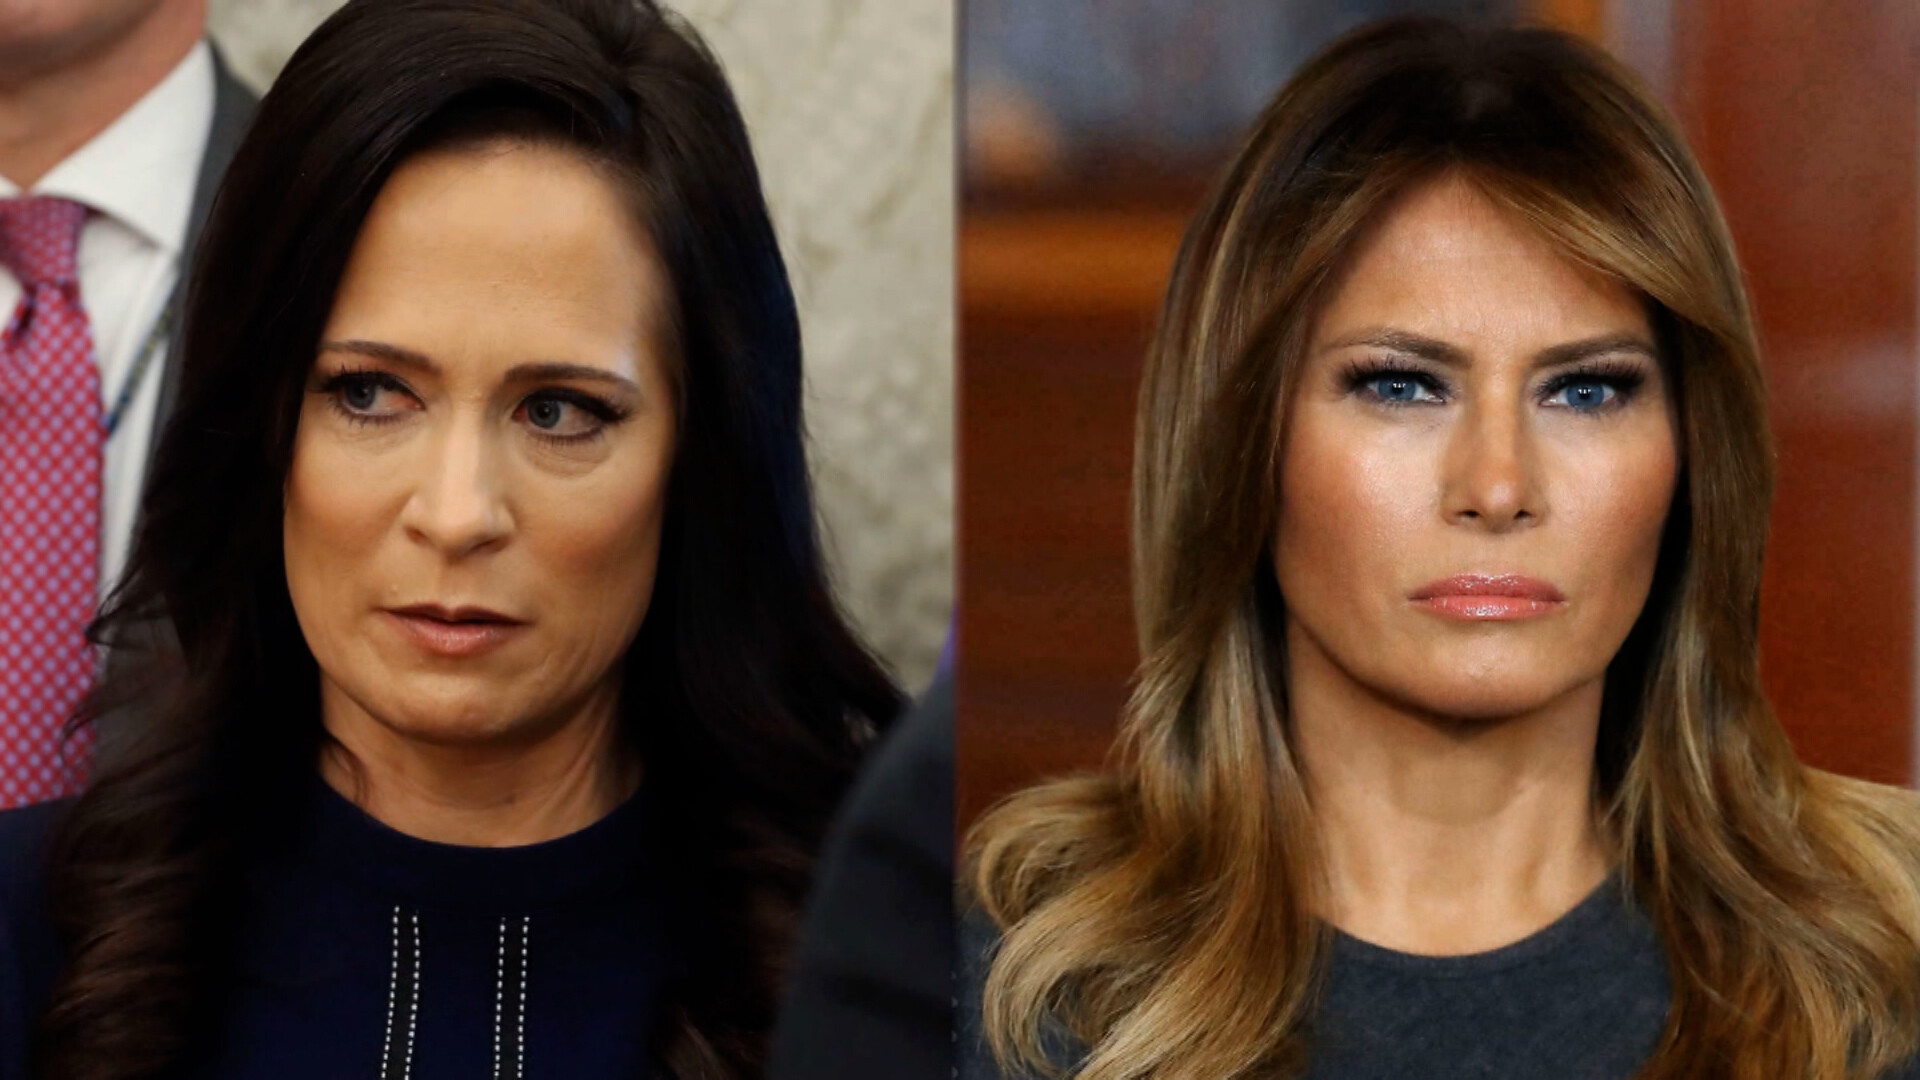 5 things about Melania Trump revealed in Stephanie Grisham's new book